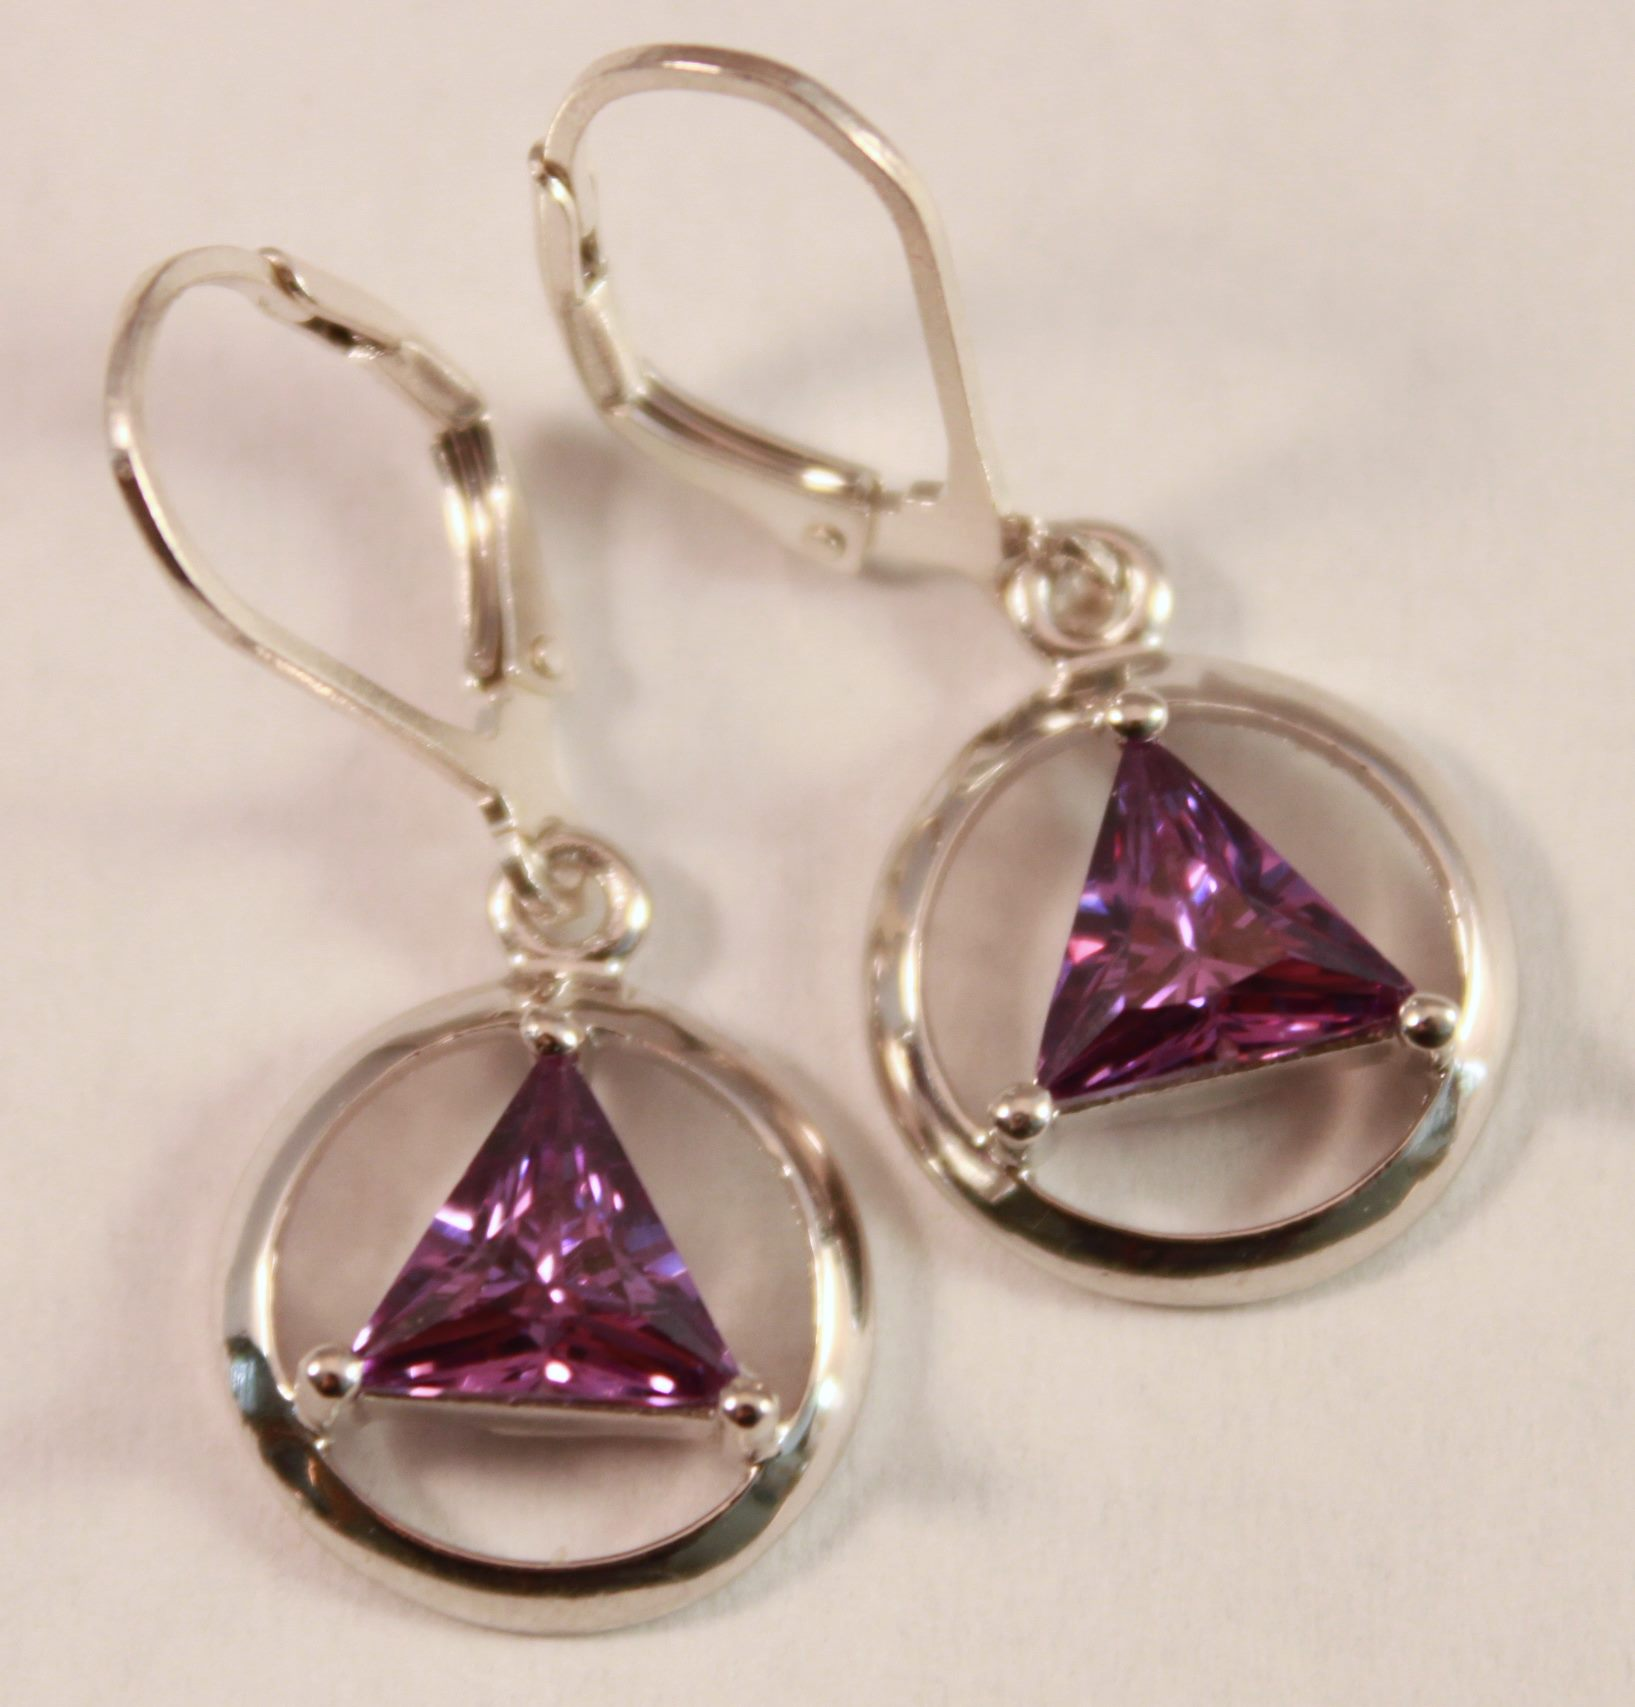 house misayo february earrings amethyst stone lg